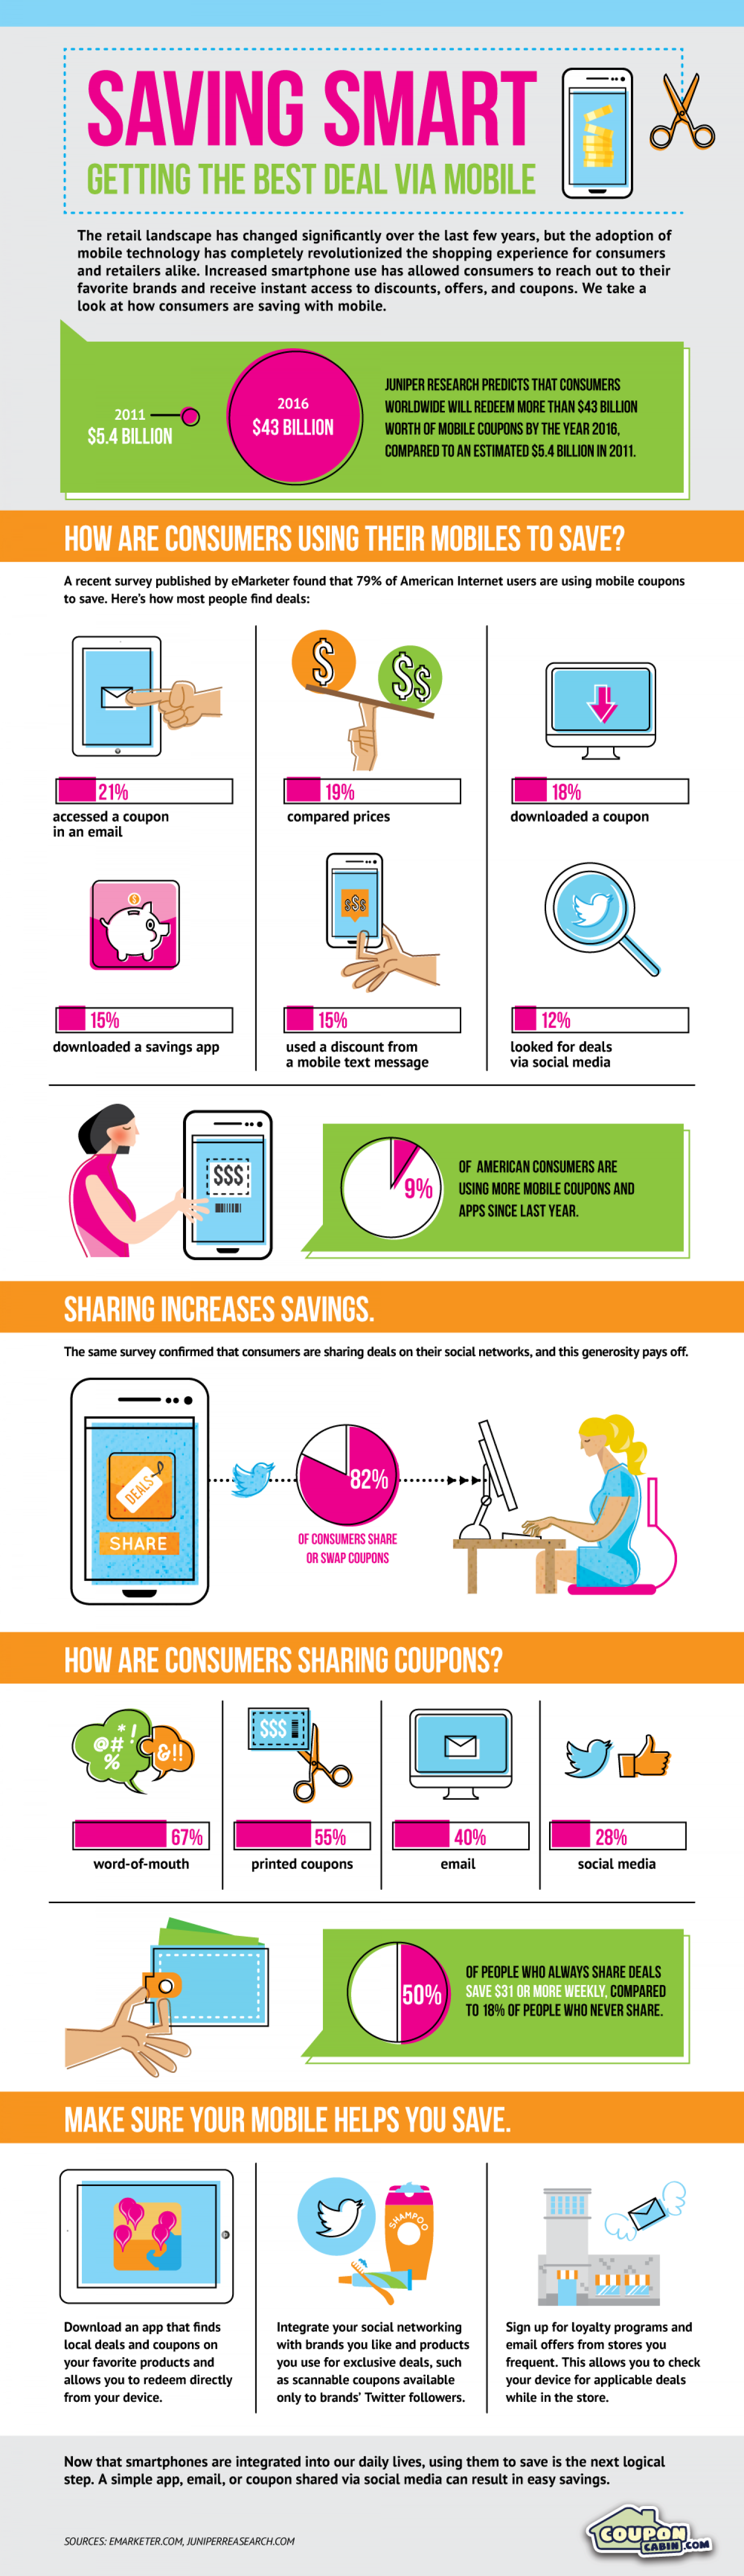 Saving Smart: Getting the Best Deal Via Mobile Infographic